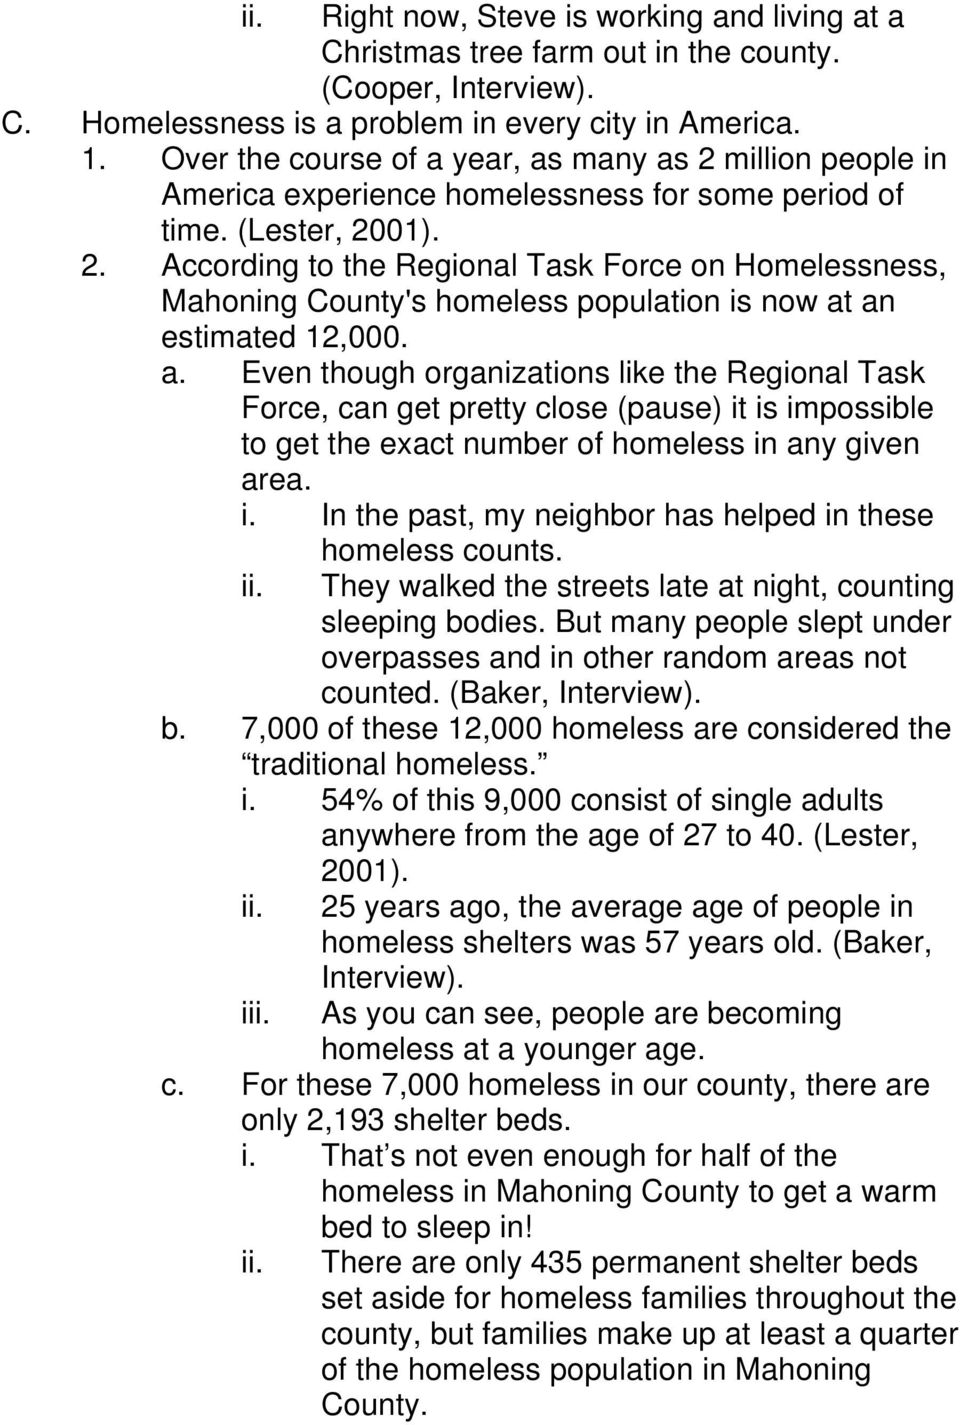 a. Even though organizations like the Regional Task Force, can get pretty close (pause) it is impossible to get the exact number of homeless in any given area. i. In the past, my neighbor has helped in these homeless counts.